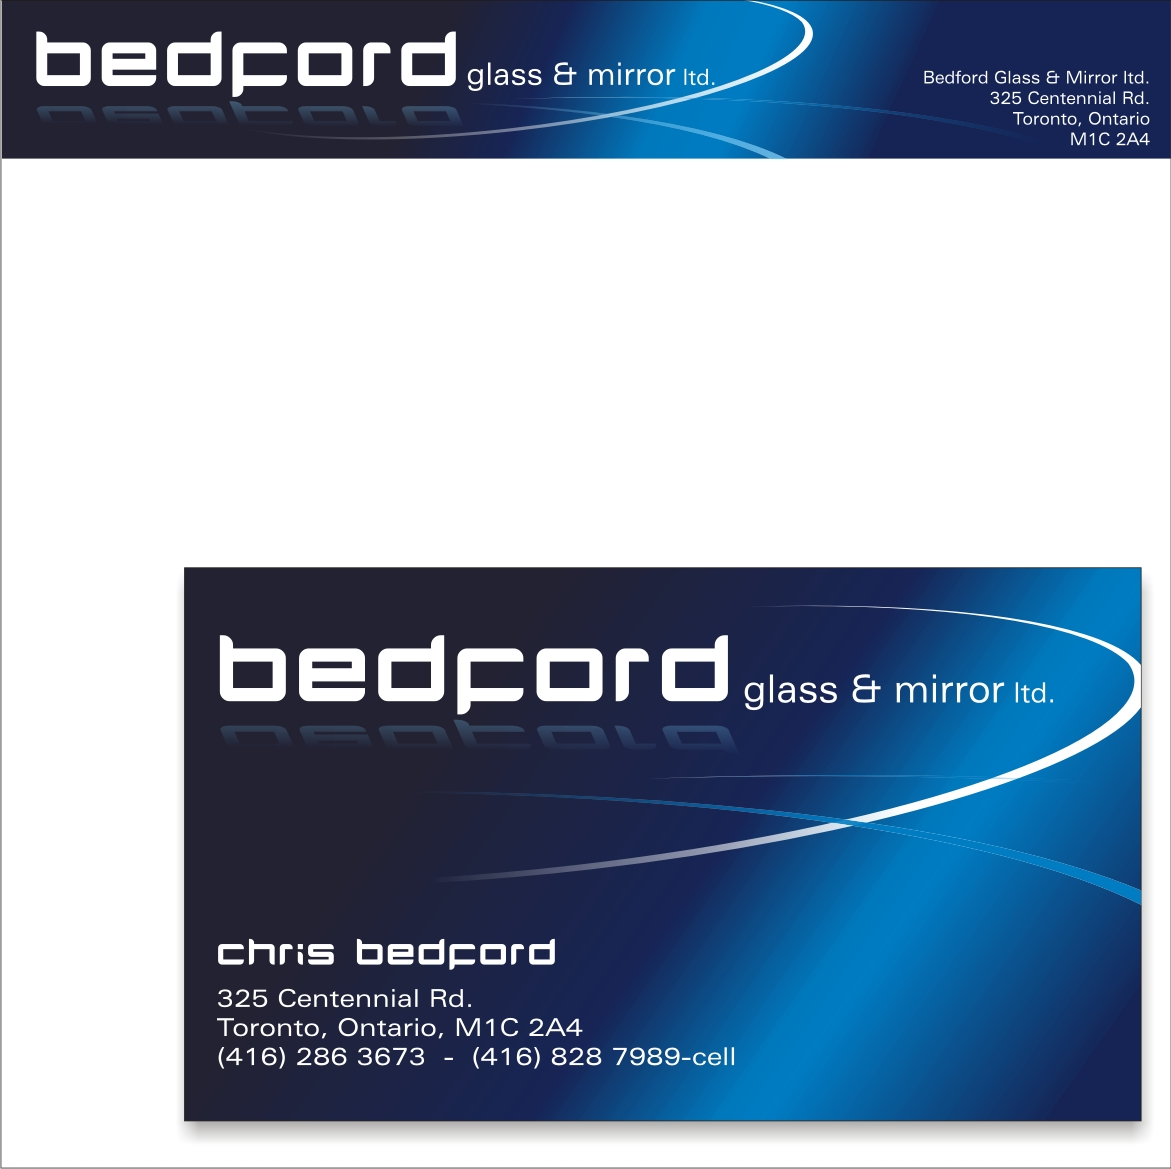 Business card design for bedford glass and mirror ltd by lush business card design by lush graphix for business card for glass company design 9649 magicingreecefo Image collections